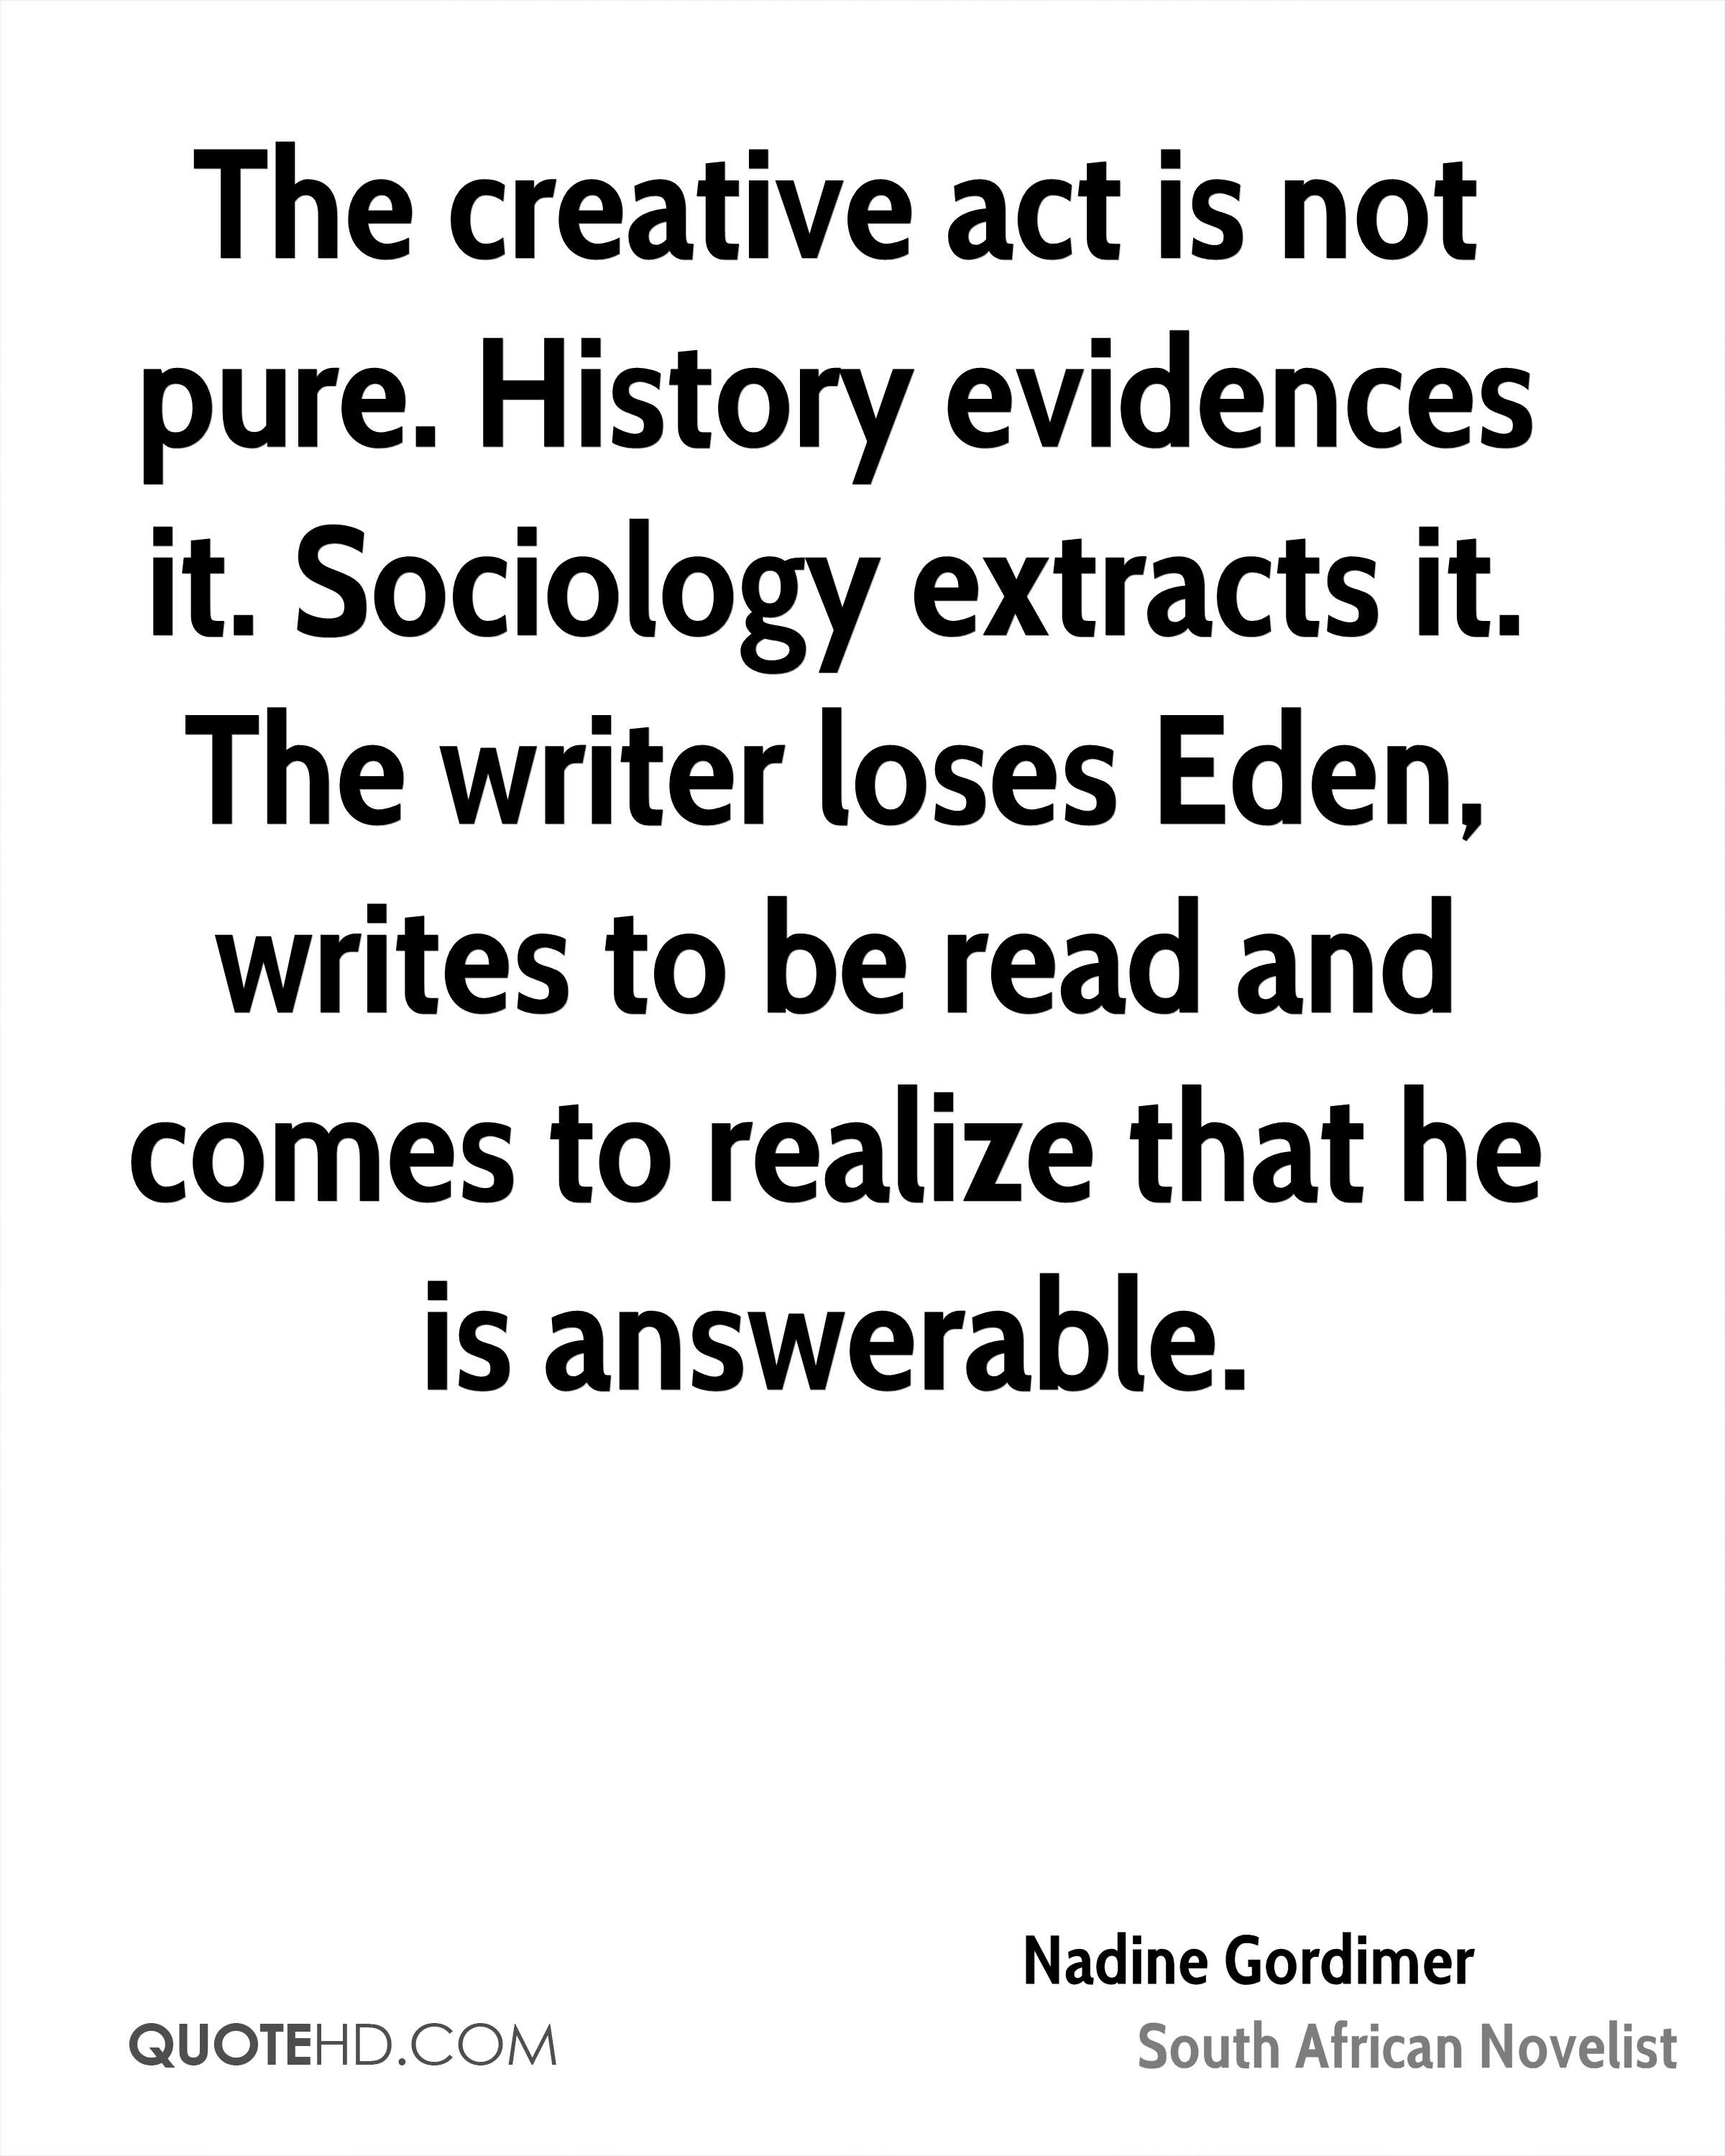 The creative act is not pure. History evidences it. Sociology extracts it. The writer loses Eden, writes to be read and comes to realize that he is answerable.